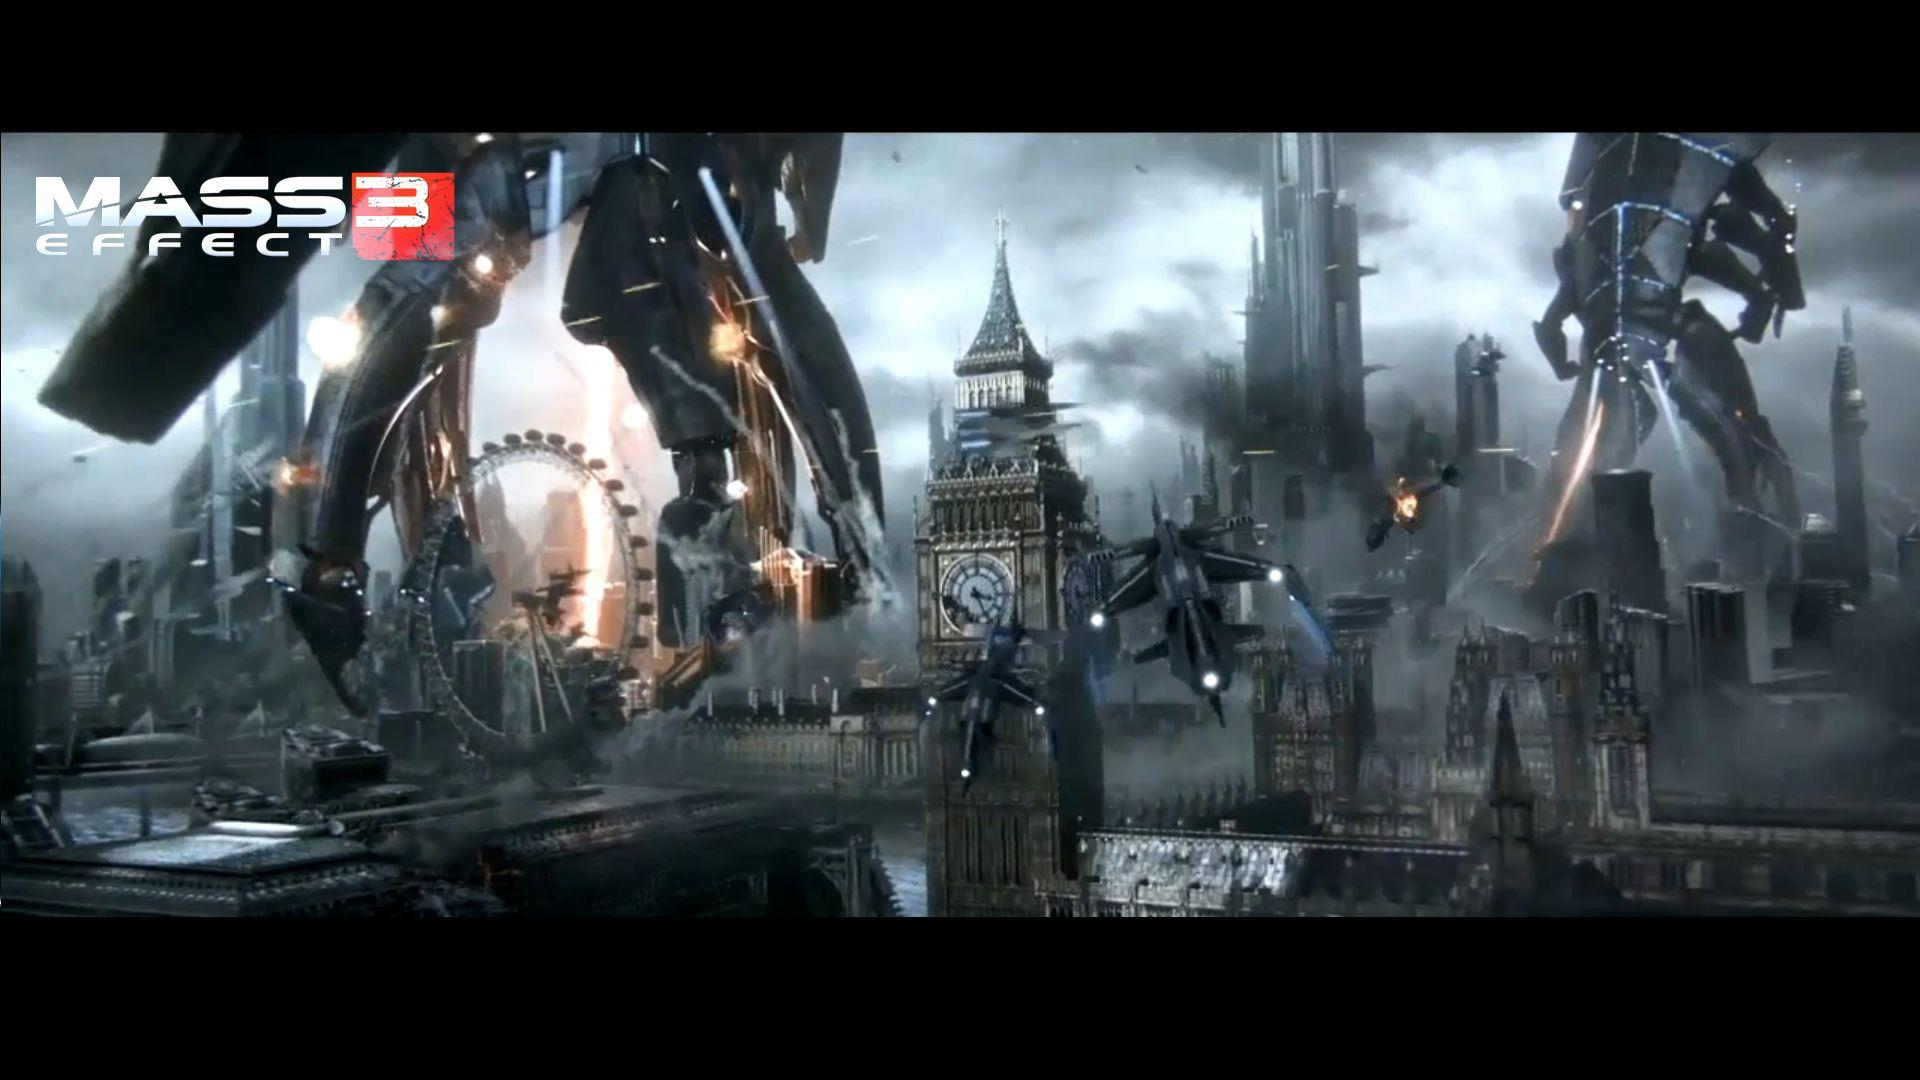 ps3 wallpapers 1080p mass - photo #27